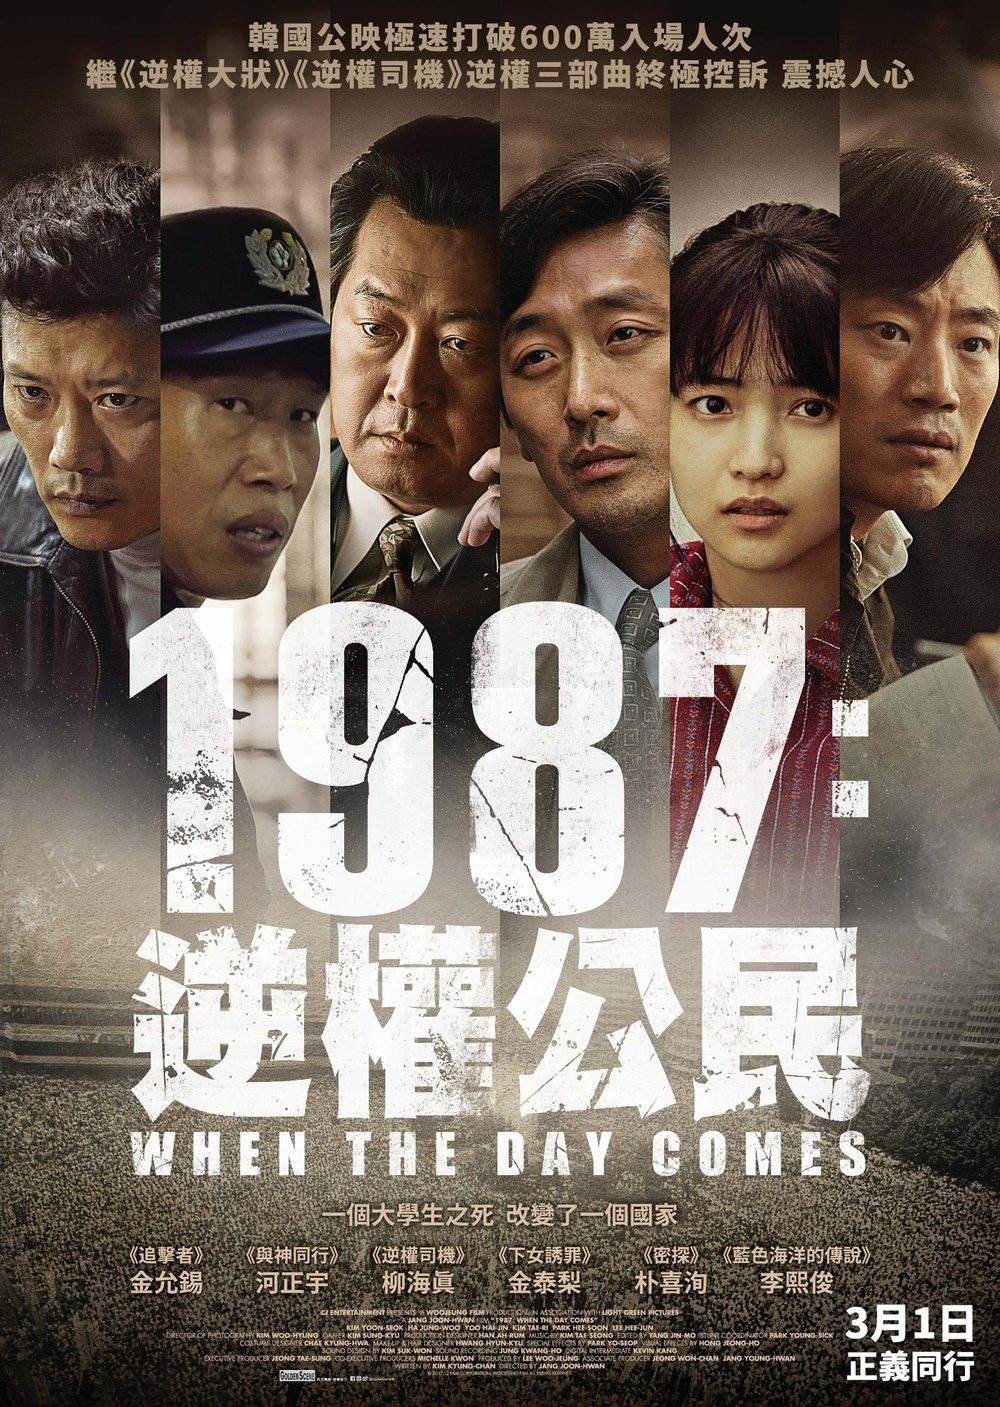 20180130_1987WhentheDayComes_Poster.jpg